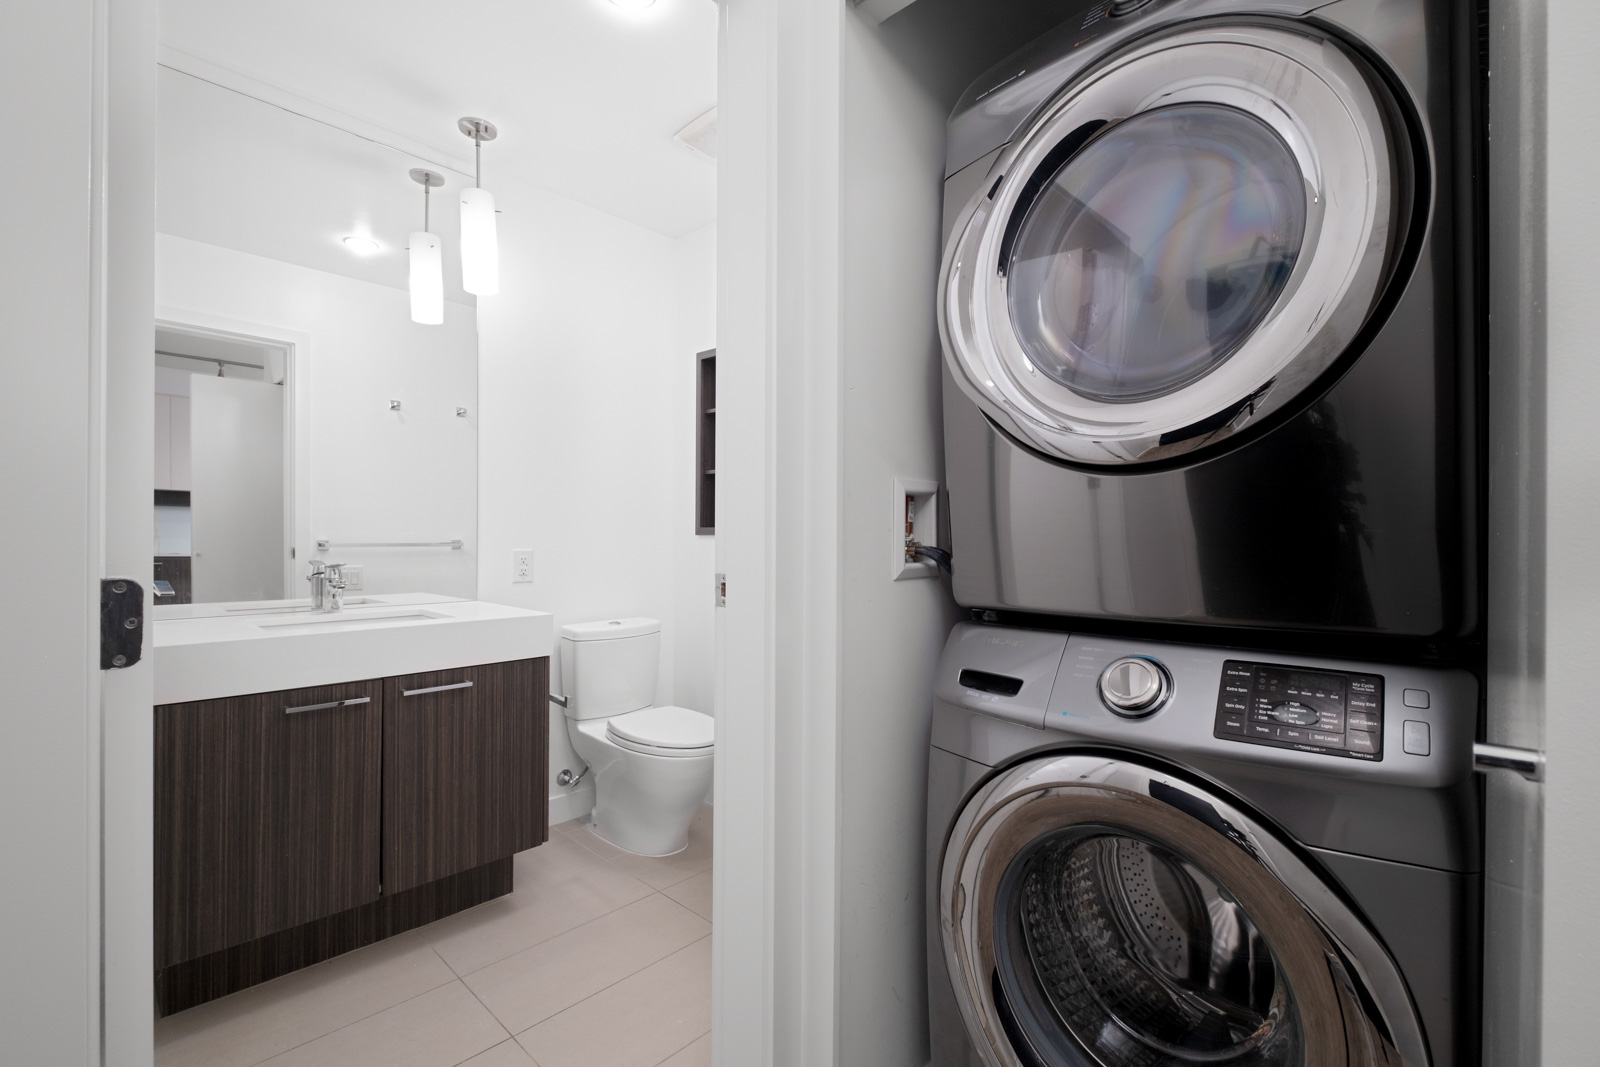 stacked washer and dryer on right and bathroom with vanity mirror and toilet on left in rental condo in lougheed heights neighbourhood of coquitlam